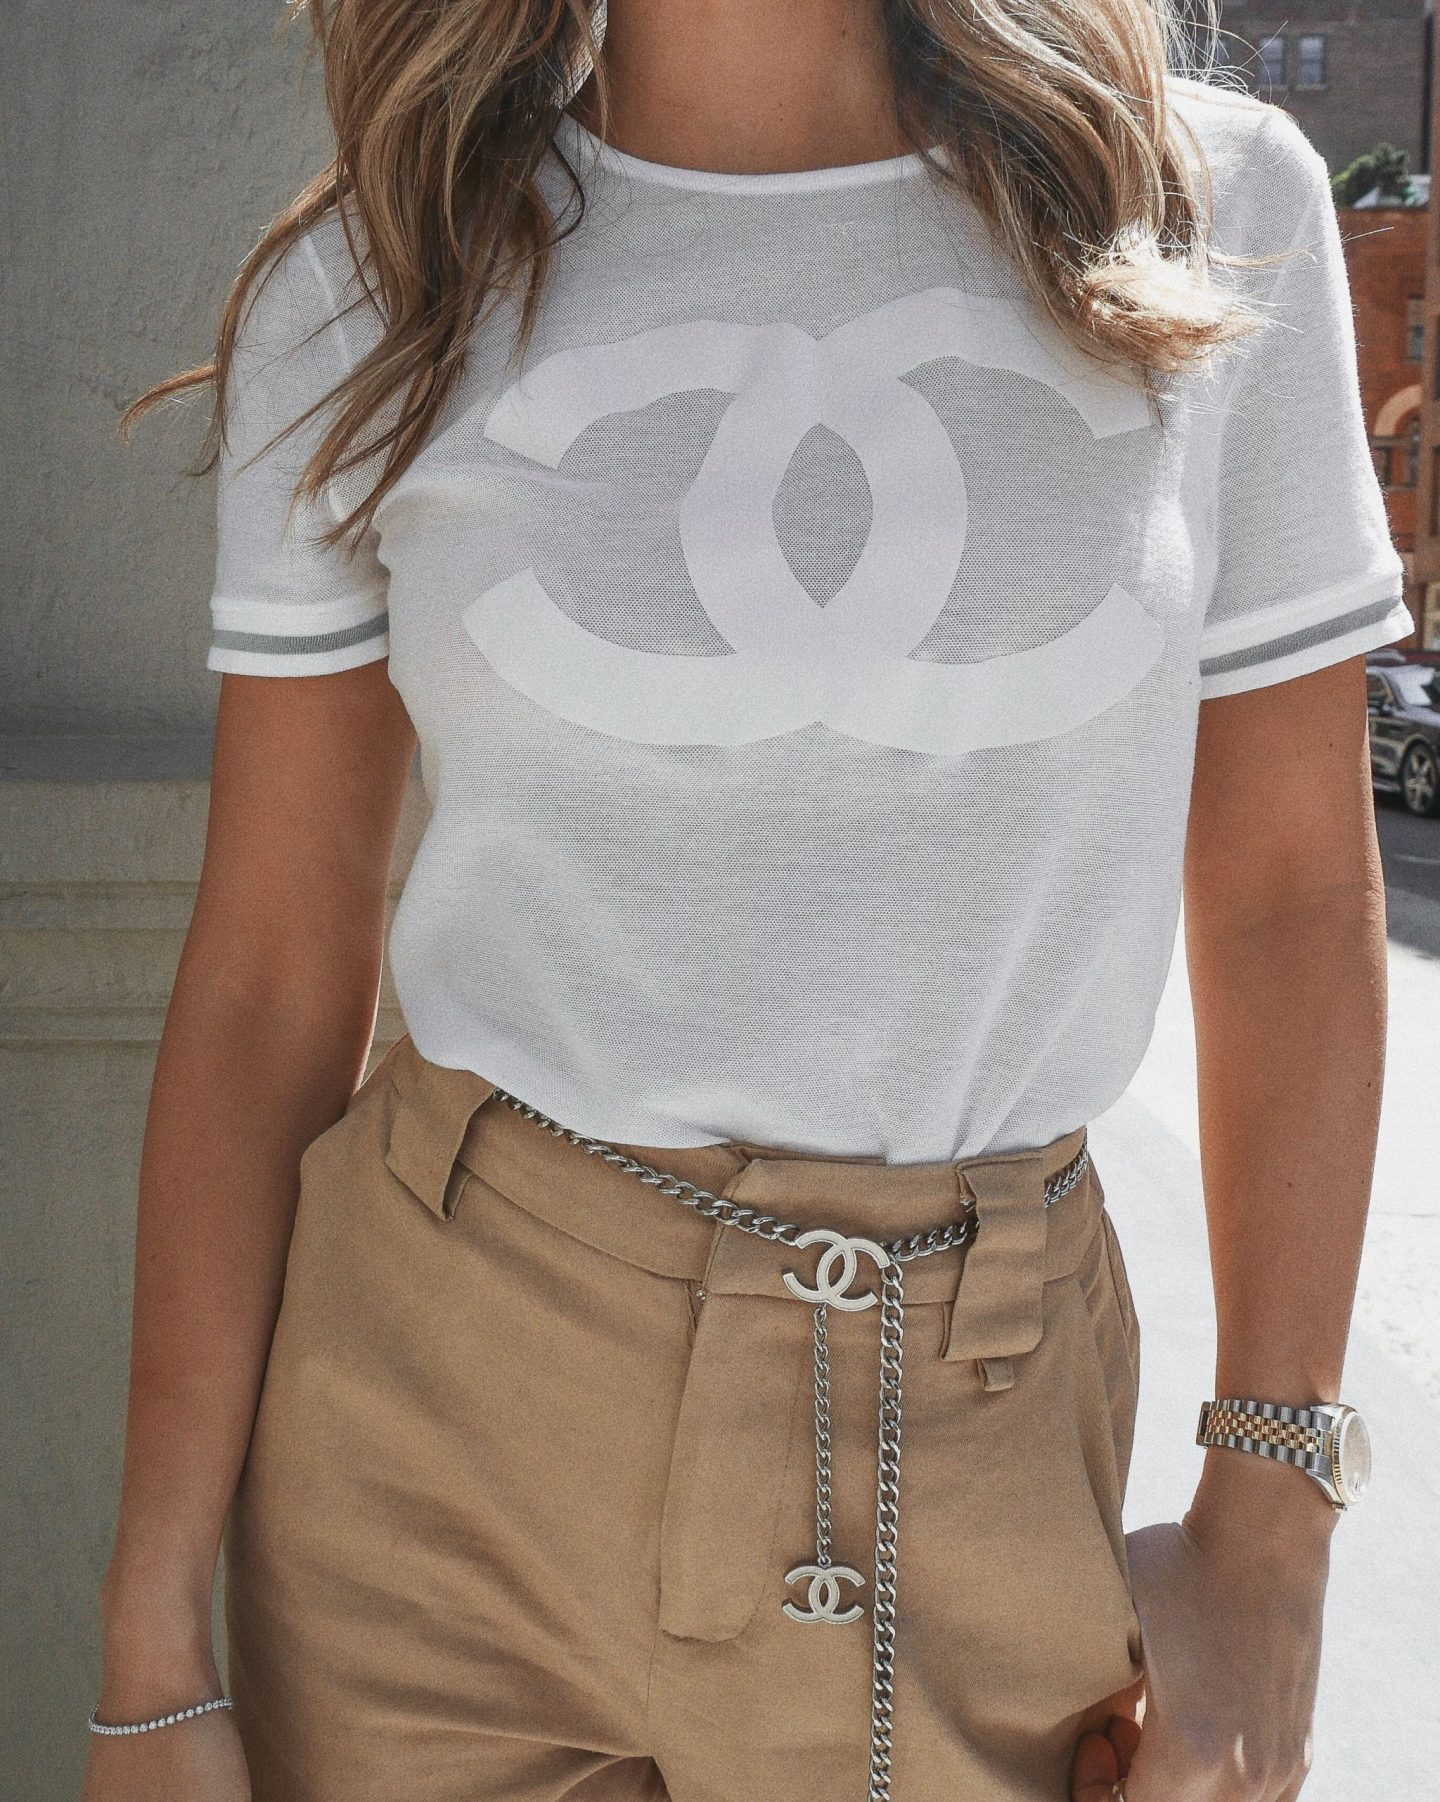 Cassandra DiMicco, Cass DiMicco, Dressed For Dreams, NYC, New York City, New York, Street Style NYC, Street Style 2018, NYC Street Style Street Style Outfits, 2018 Trends, NYC Fashion Blogger, i.am.gia pants, Chanel chain belt, chain belt, Chanel belt, vintage Chanel t-shirt, Chanel logo t-shirt, vintage Chanel